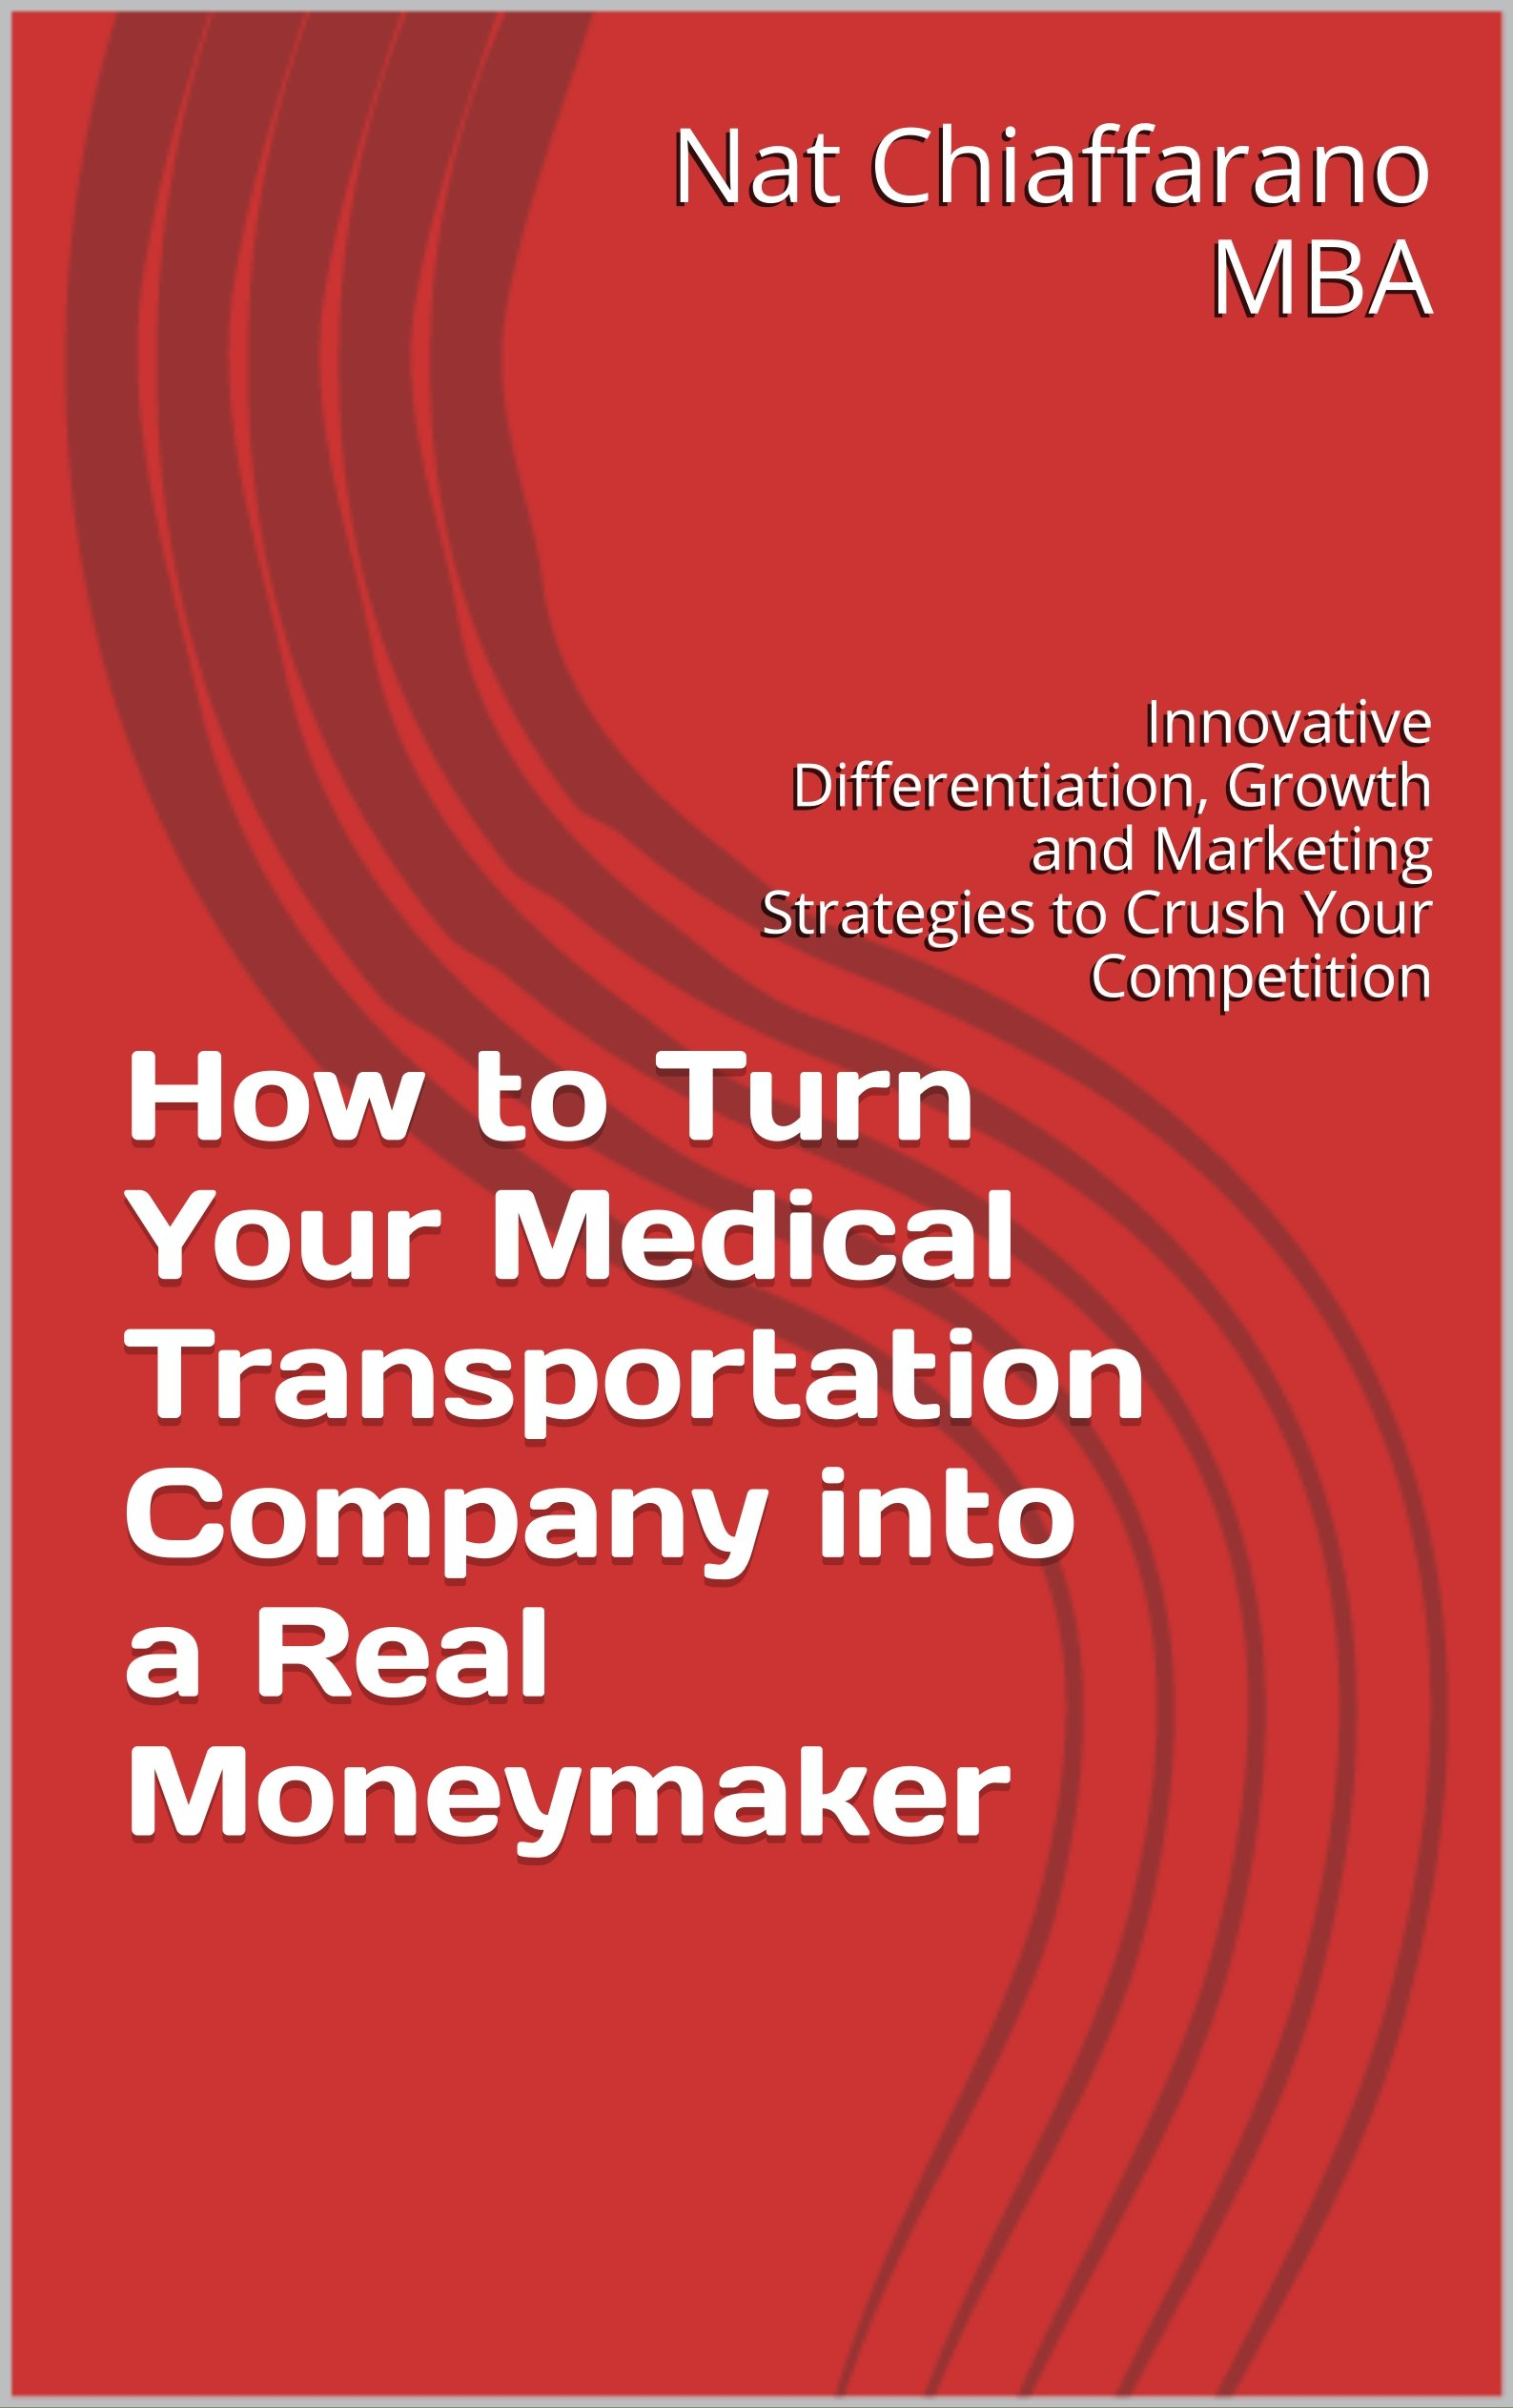 How to Turn Your Medical Transportation Company into a Real Moneymaker: Innovative Differentiation, Growth and Marketing Strategies to Crush Your Competition